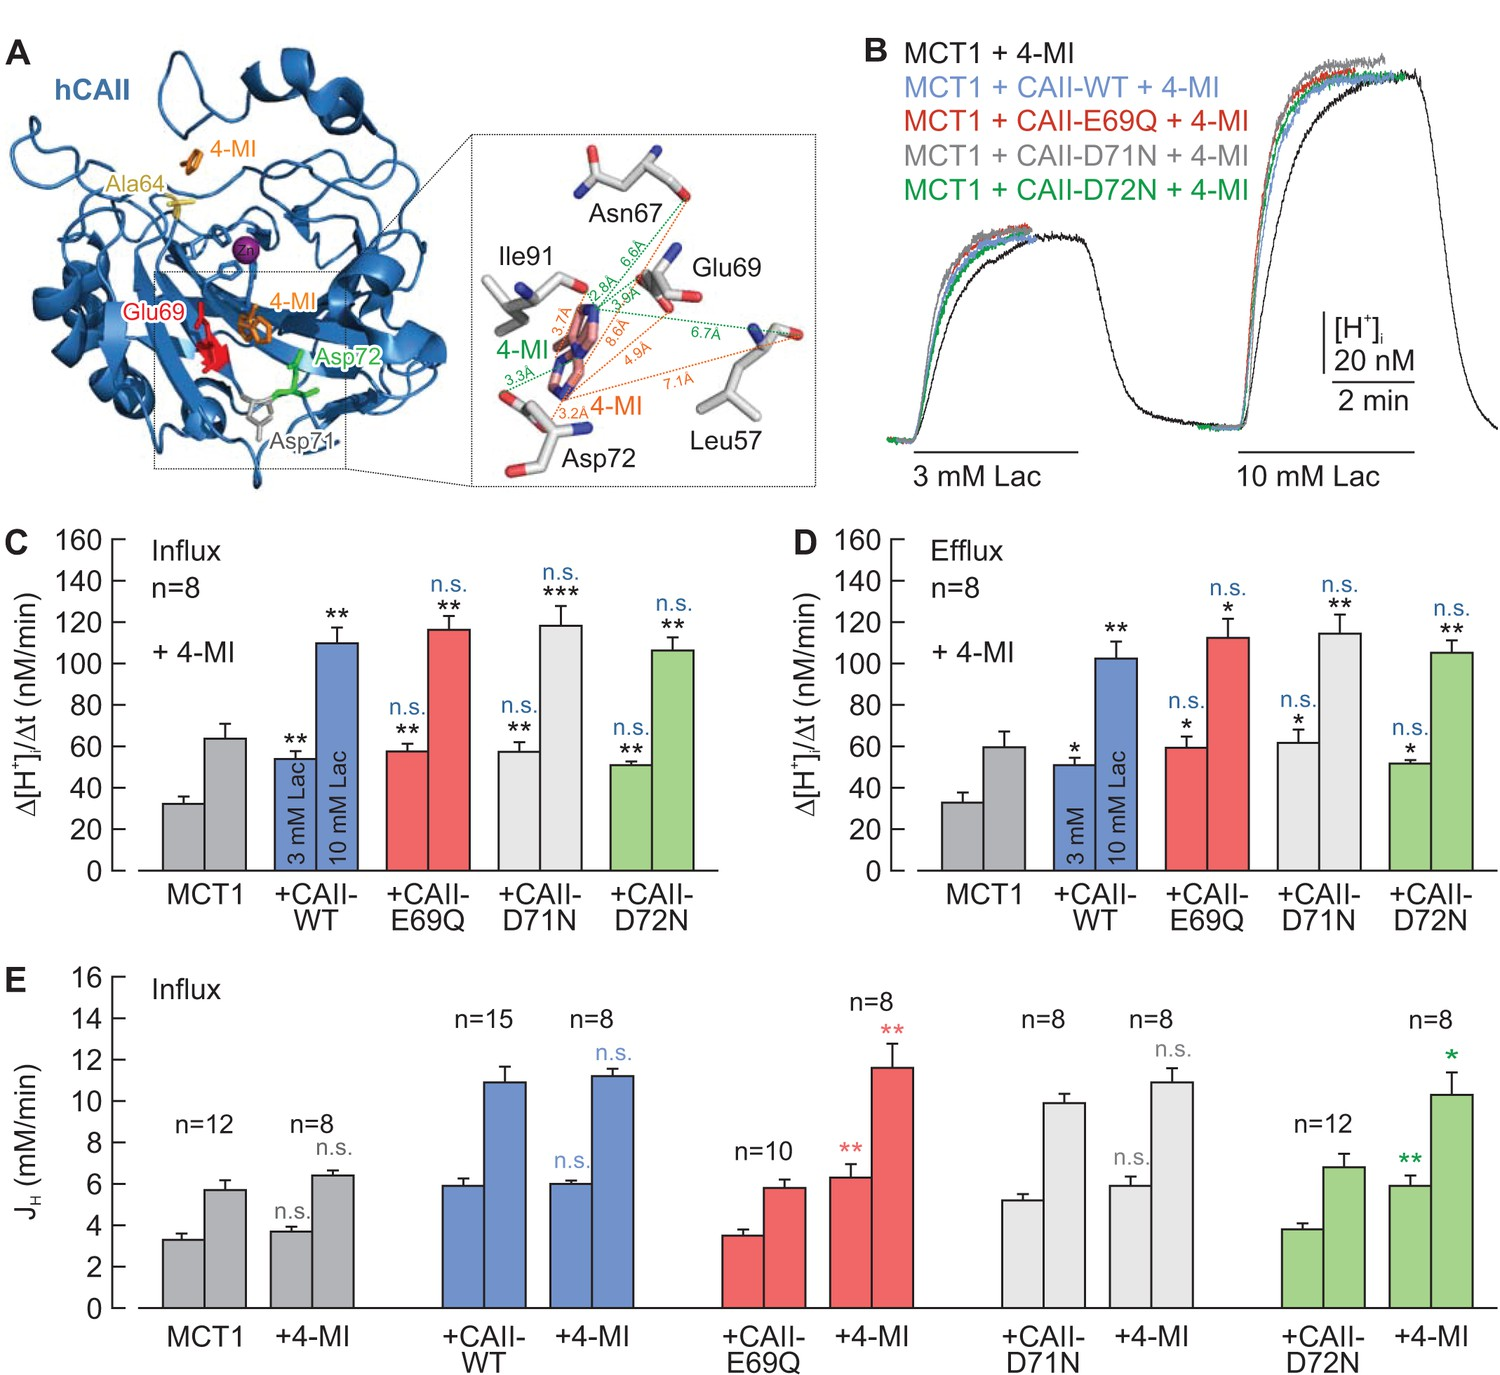 A Surface Proton Antenna In Carbonic Anhydrase Ii Supports Lactate Mallory 685 Wiring Diagram Chemical Rescue Of The Interaction Between Mct1 And Caii E69q D72n By 4 Methylimidazole